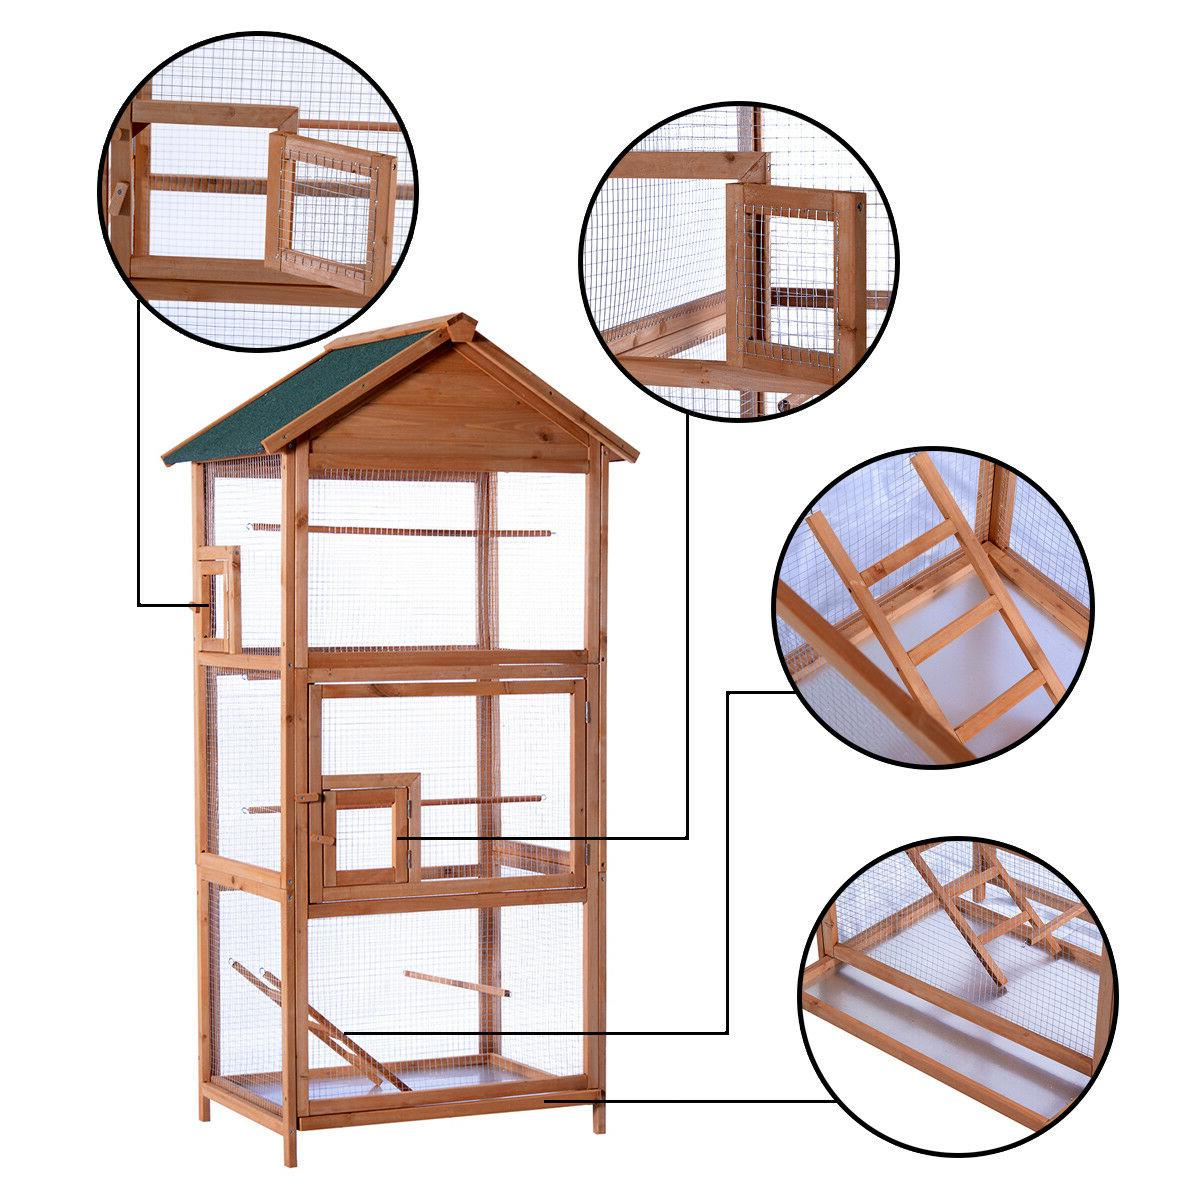 Wooden Cage Cockatiel Parakeet Canary Finch Play House Pet Supply